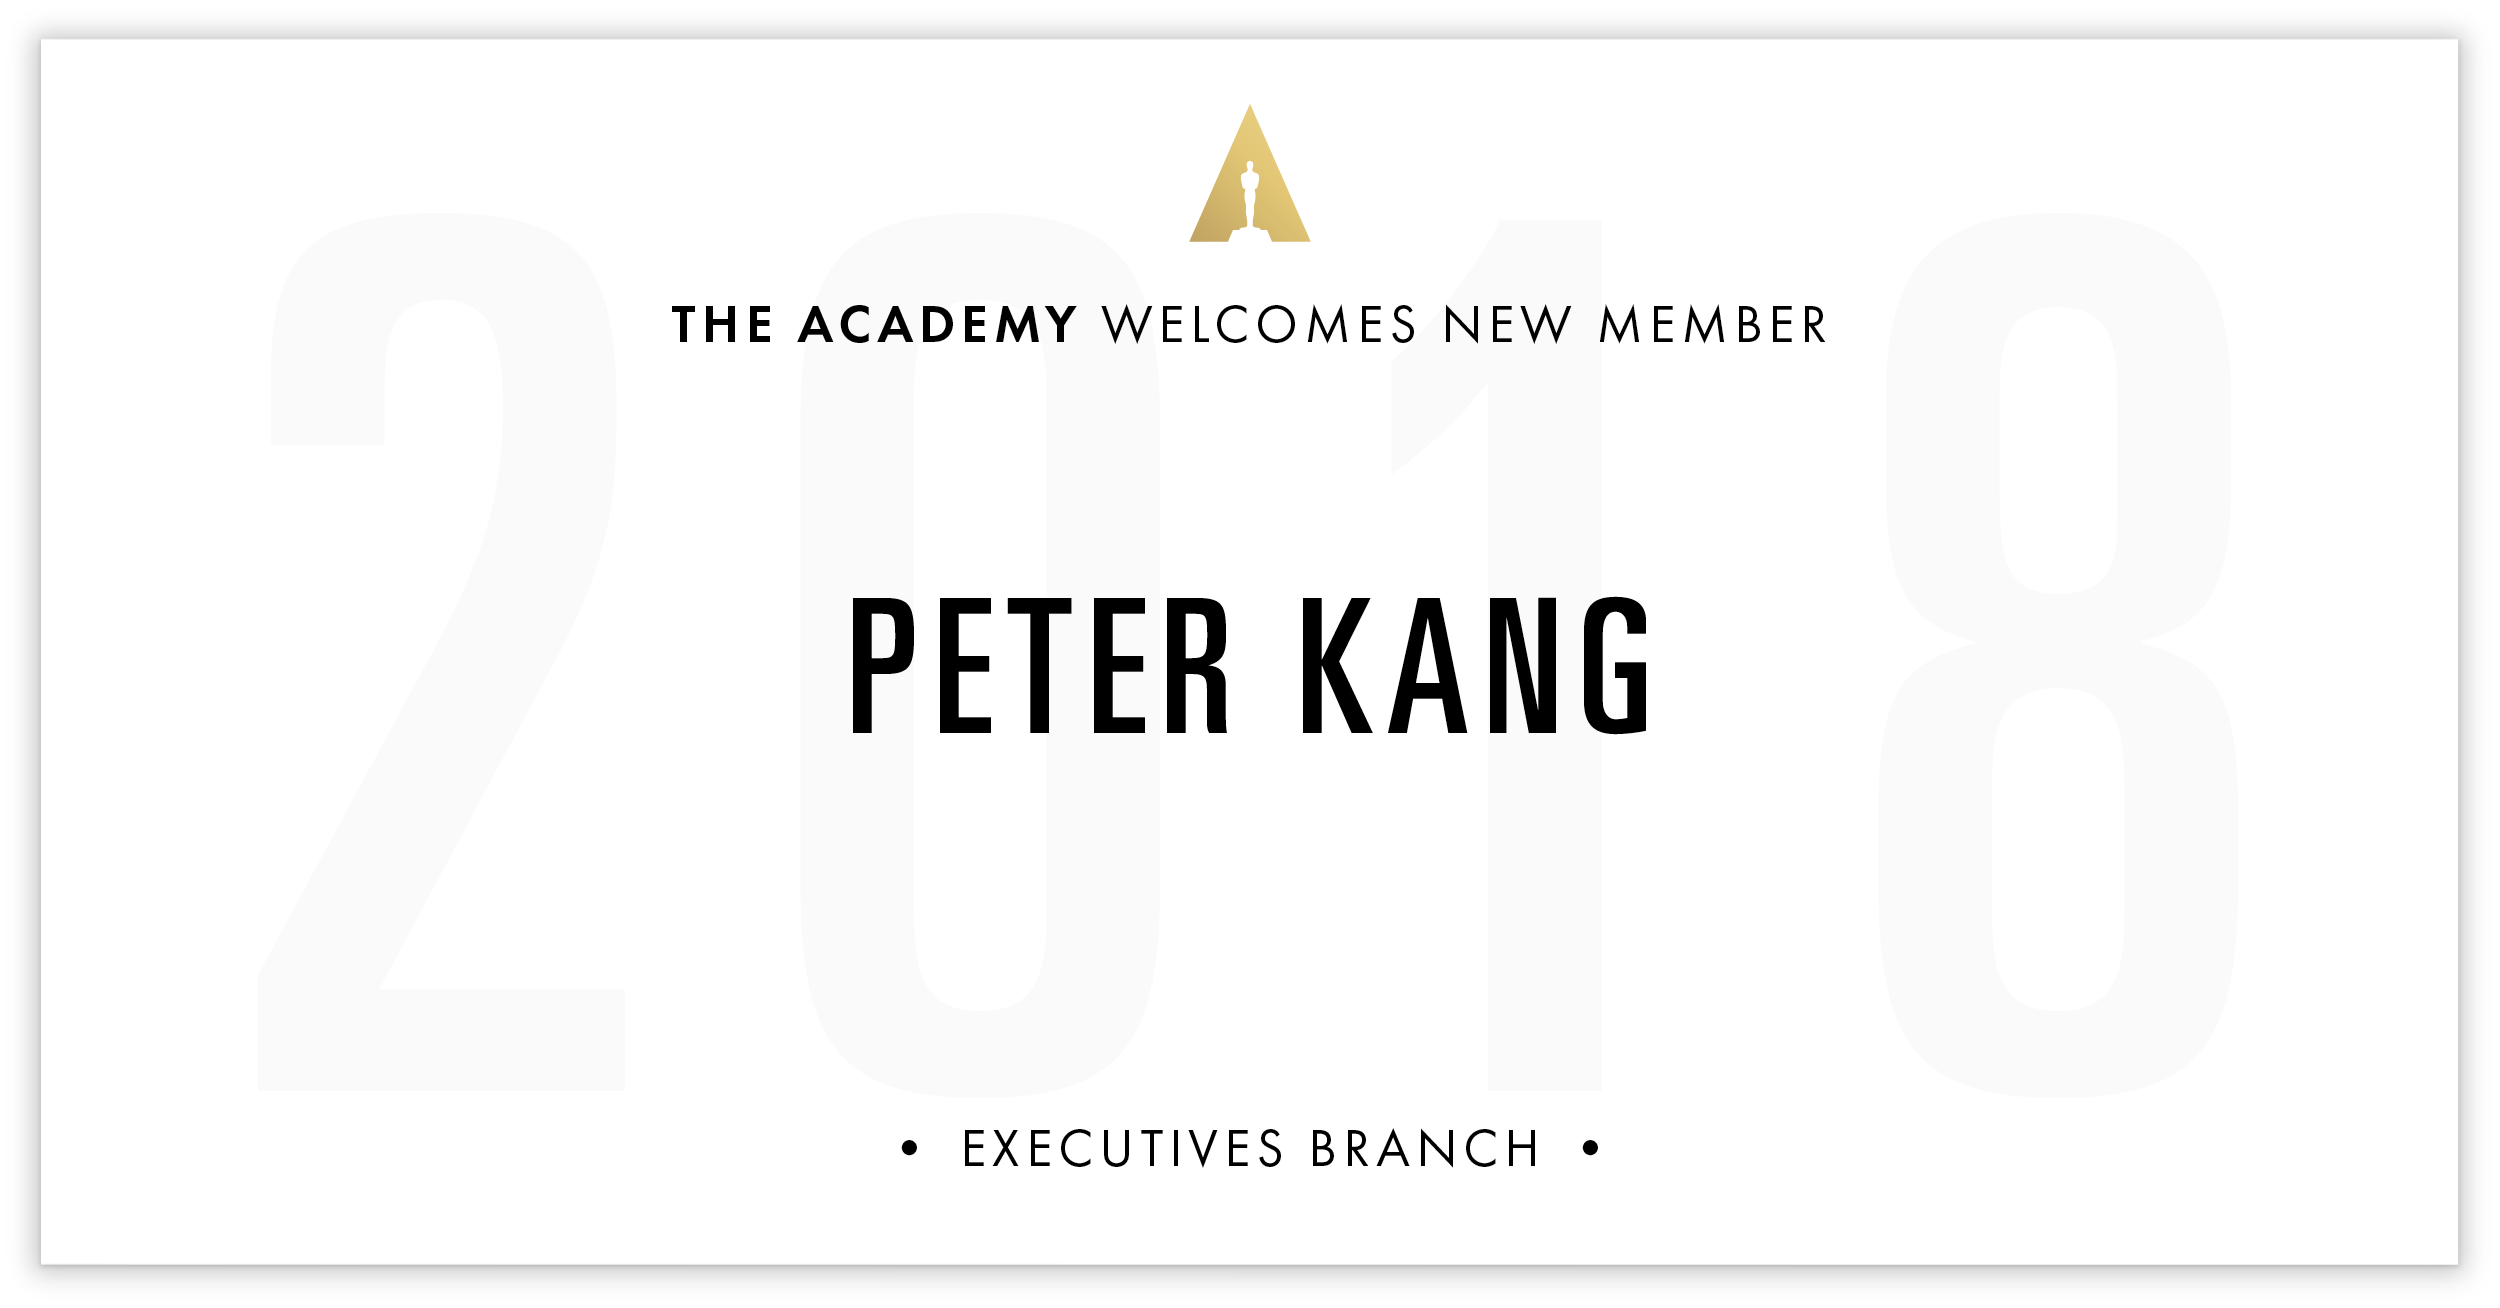 Peter Kang is invited!